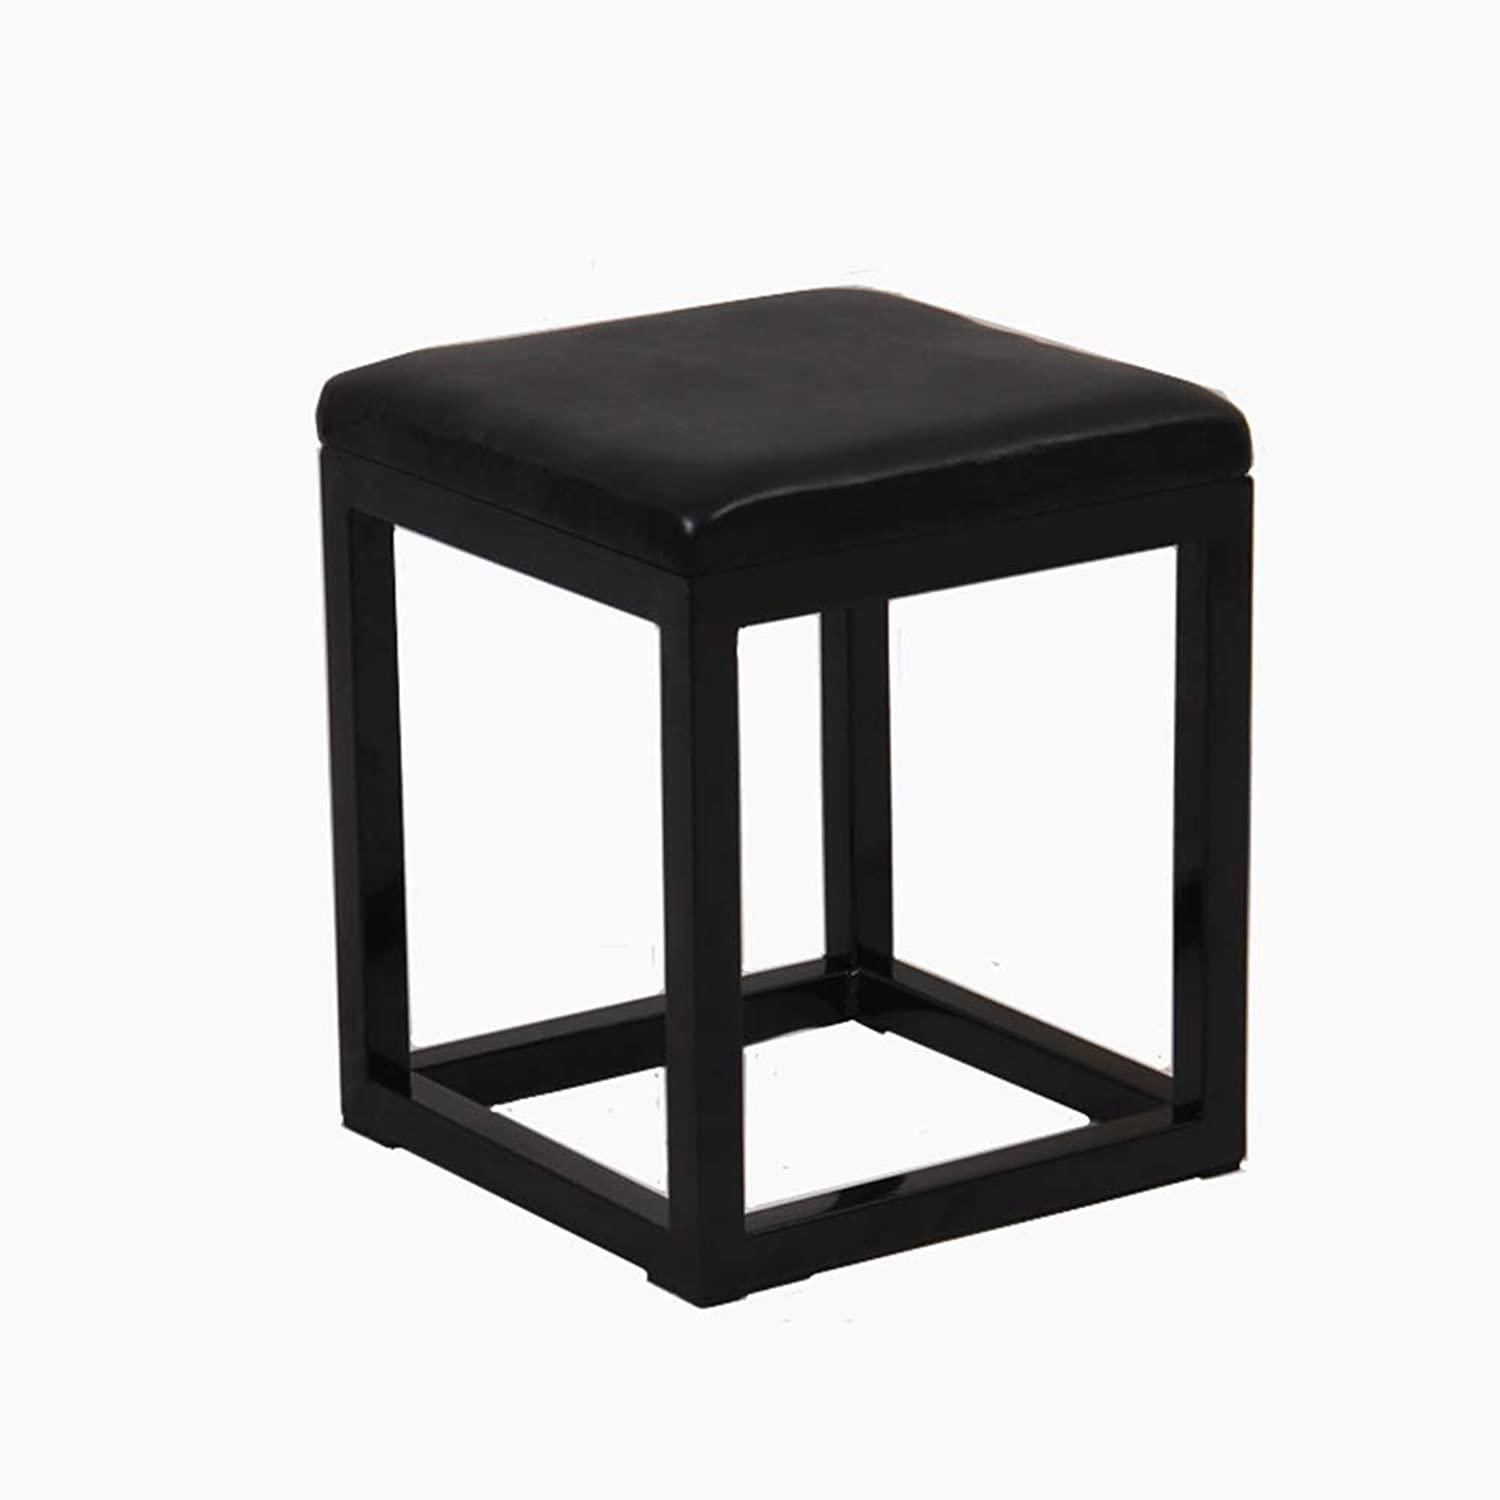 AGLZWY Stool Iron Art Dressing Stool Change shoes Bench Simple Square Stool, 2 colors, 2 Size (color   Black, Size   35X30X45CM)